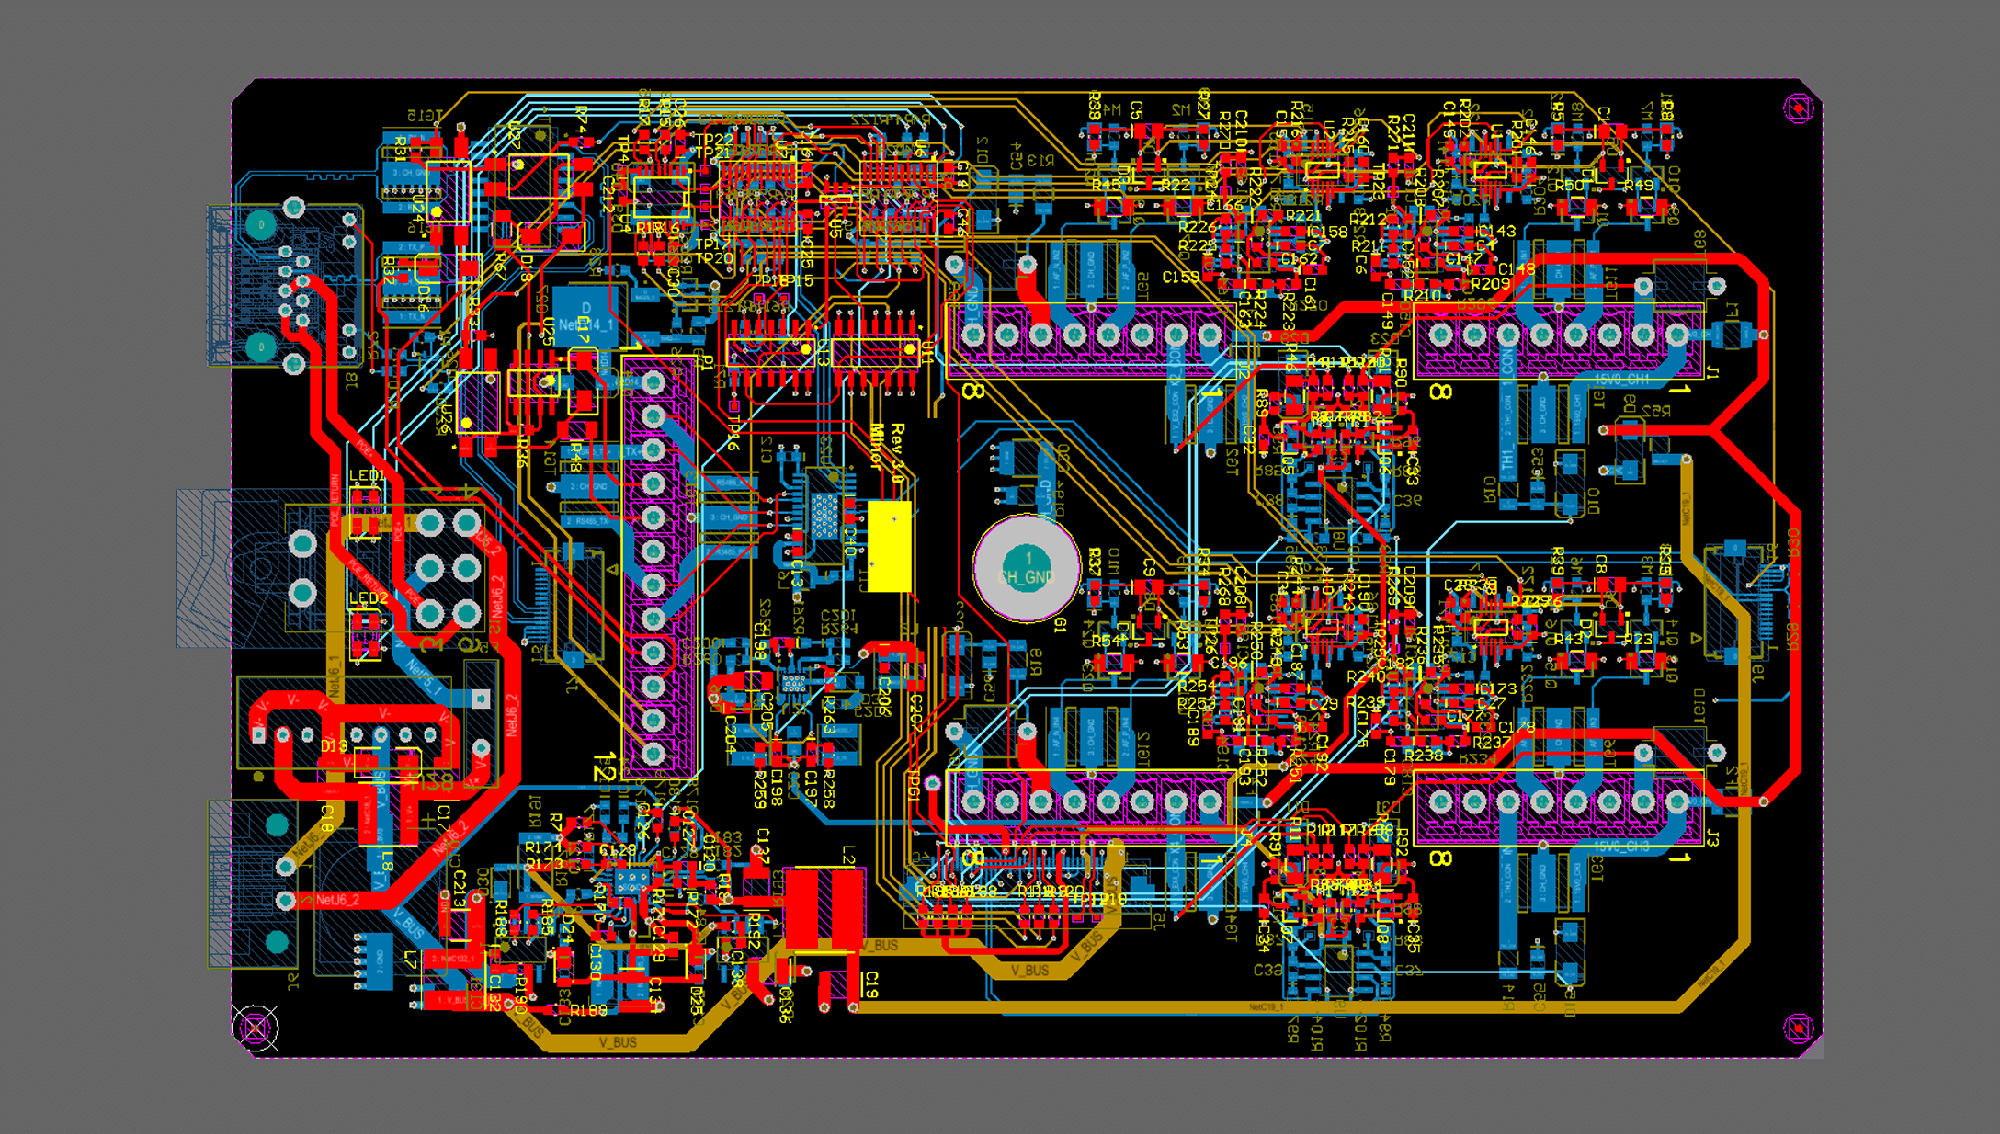 Altium Designer PCB Layout